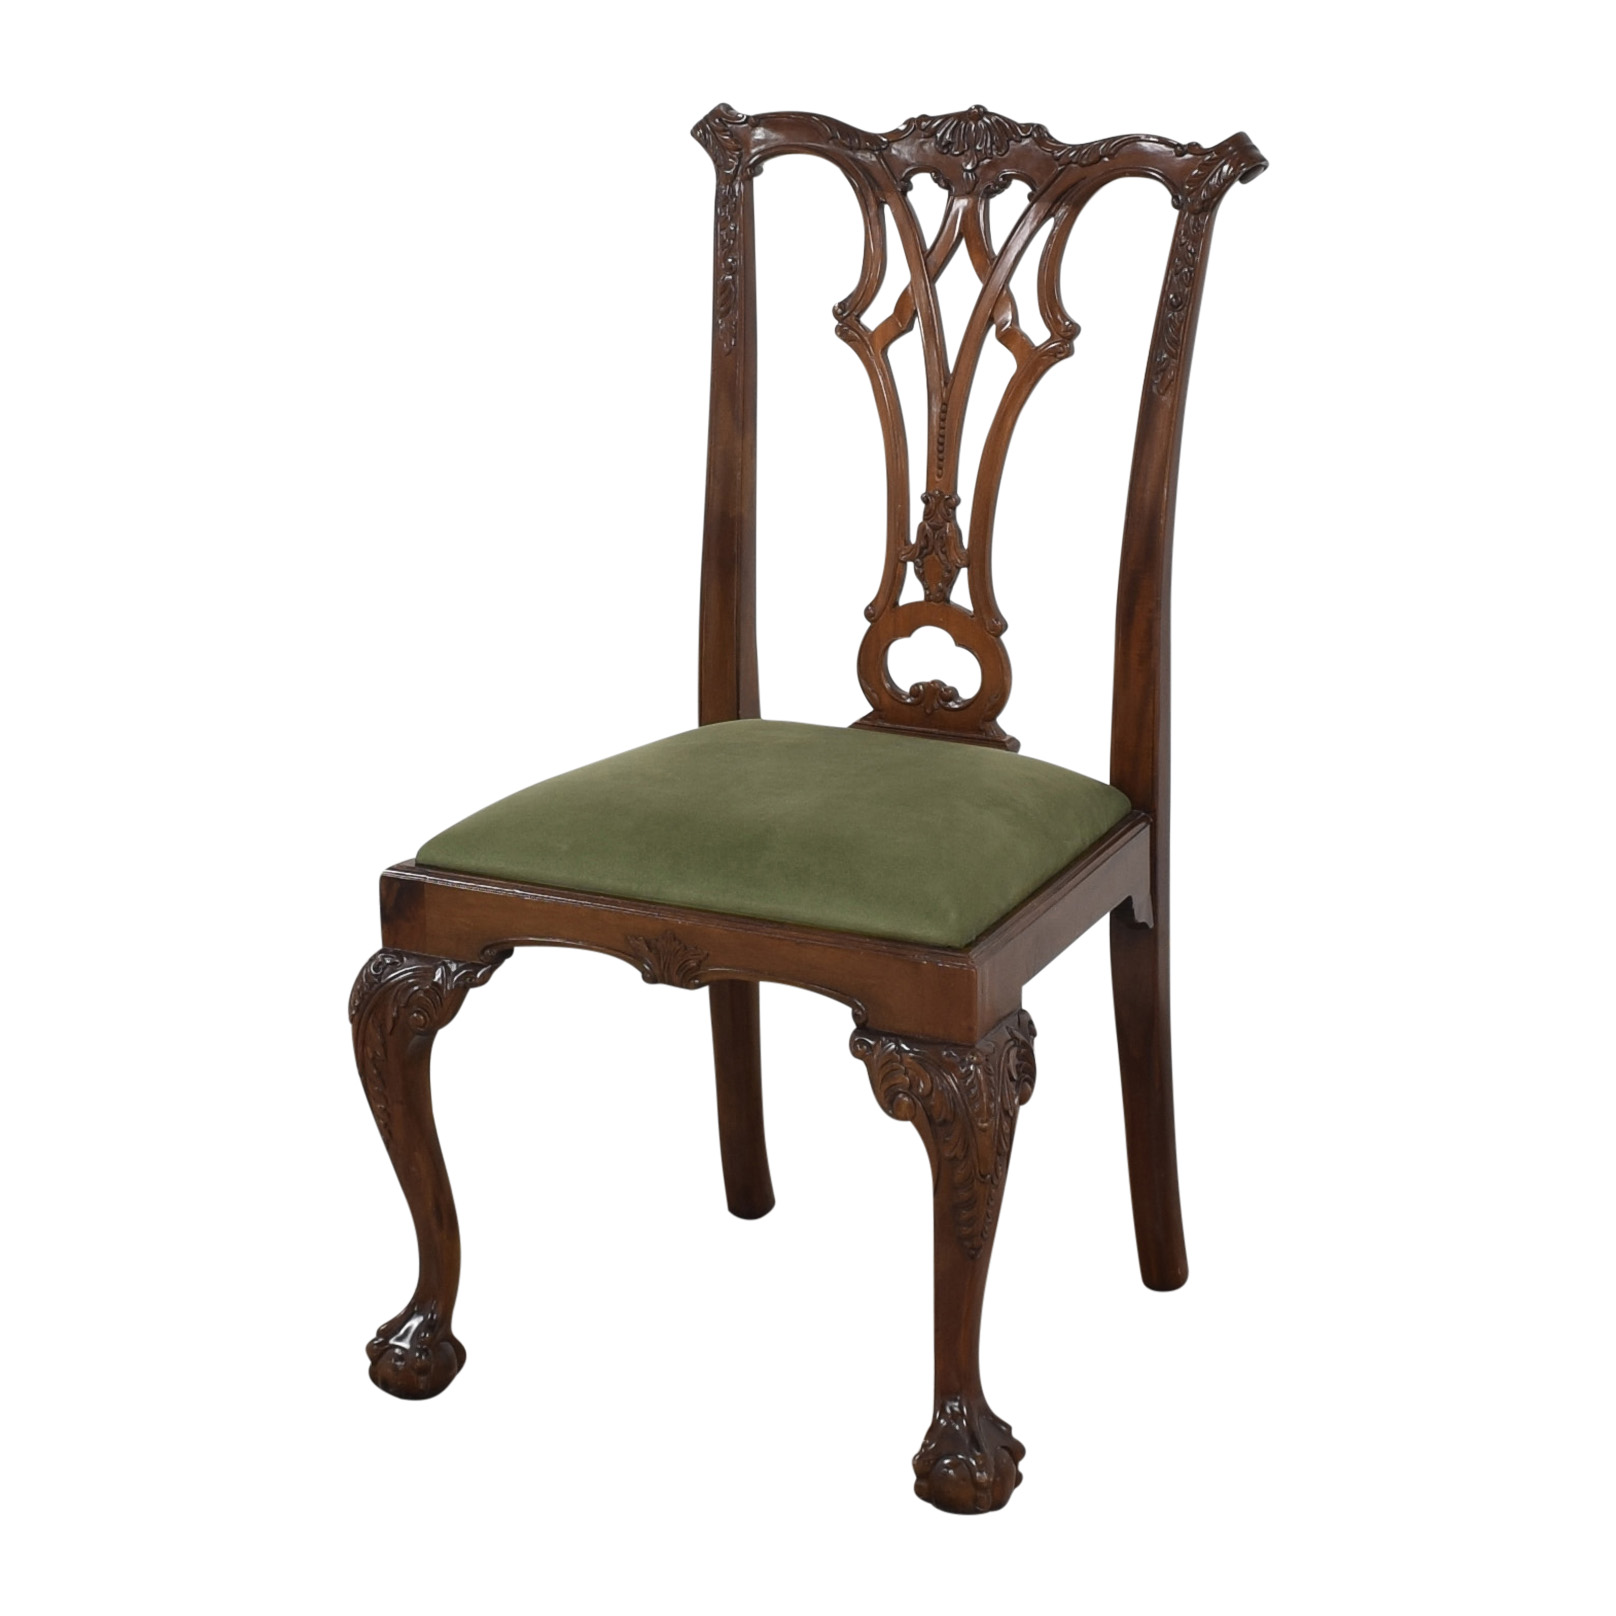 Greenbaum Interiors Queen Anne Style Dining Chairs on sale